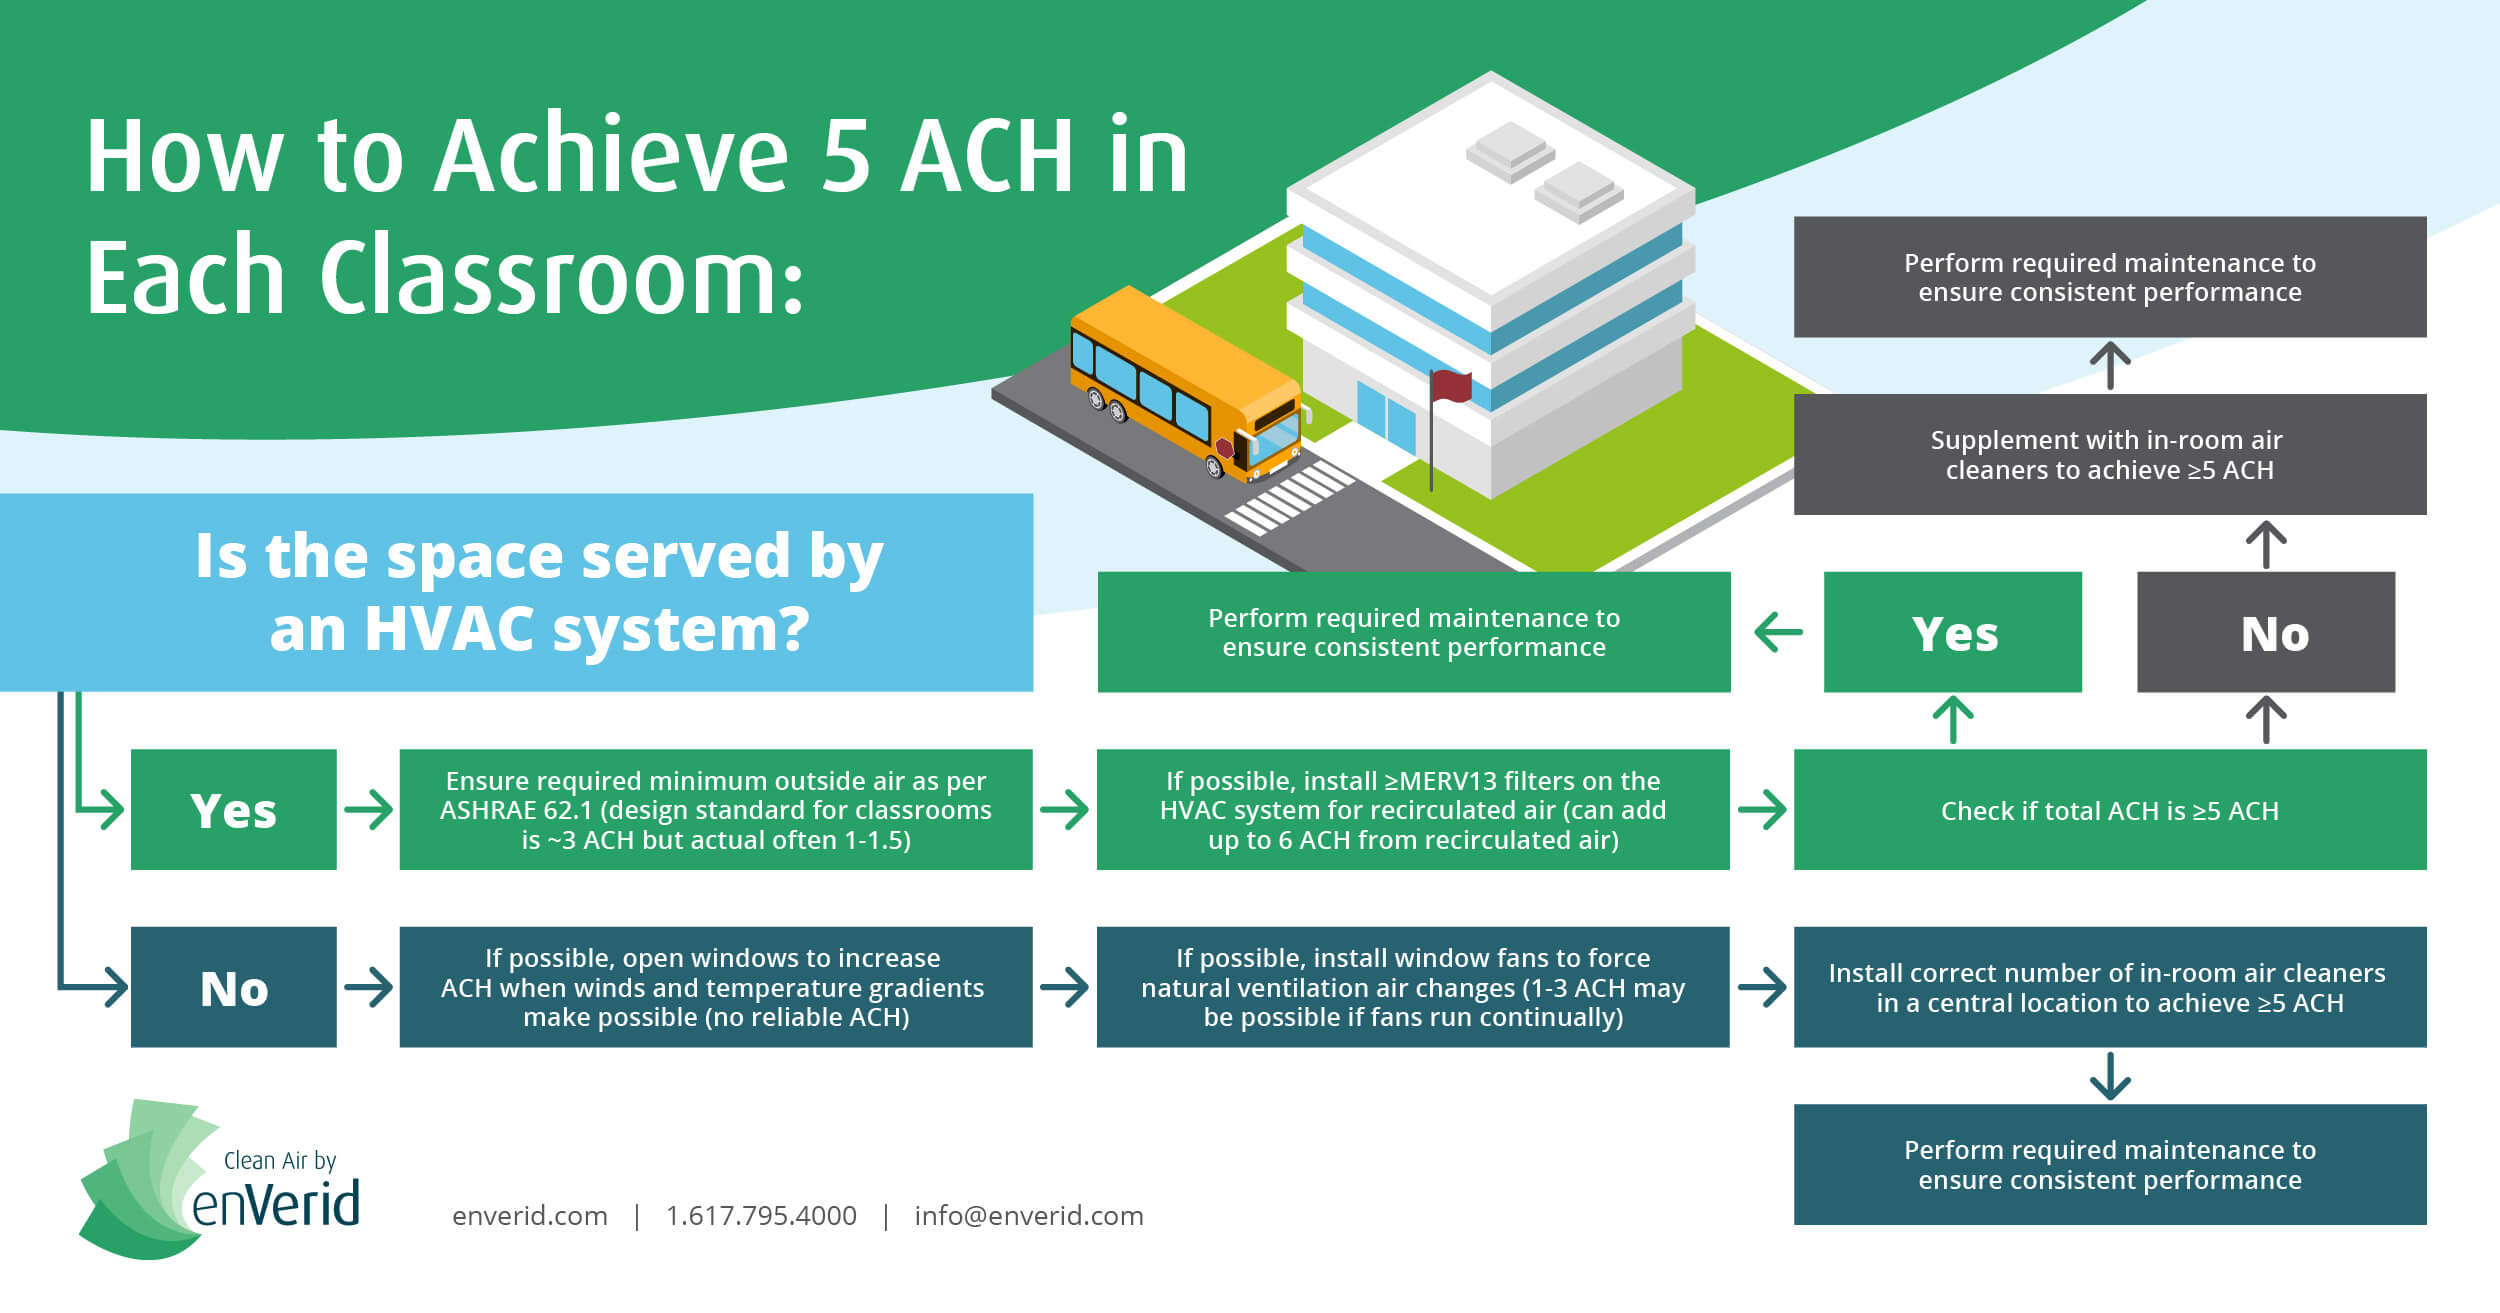 How to Achieve 5 Air Changes per Hour (ACH) in Classrooms enVerid Systems